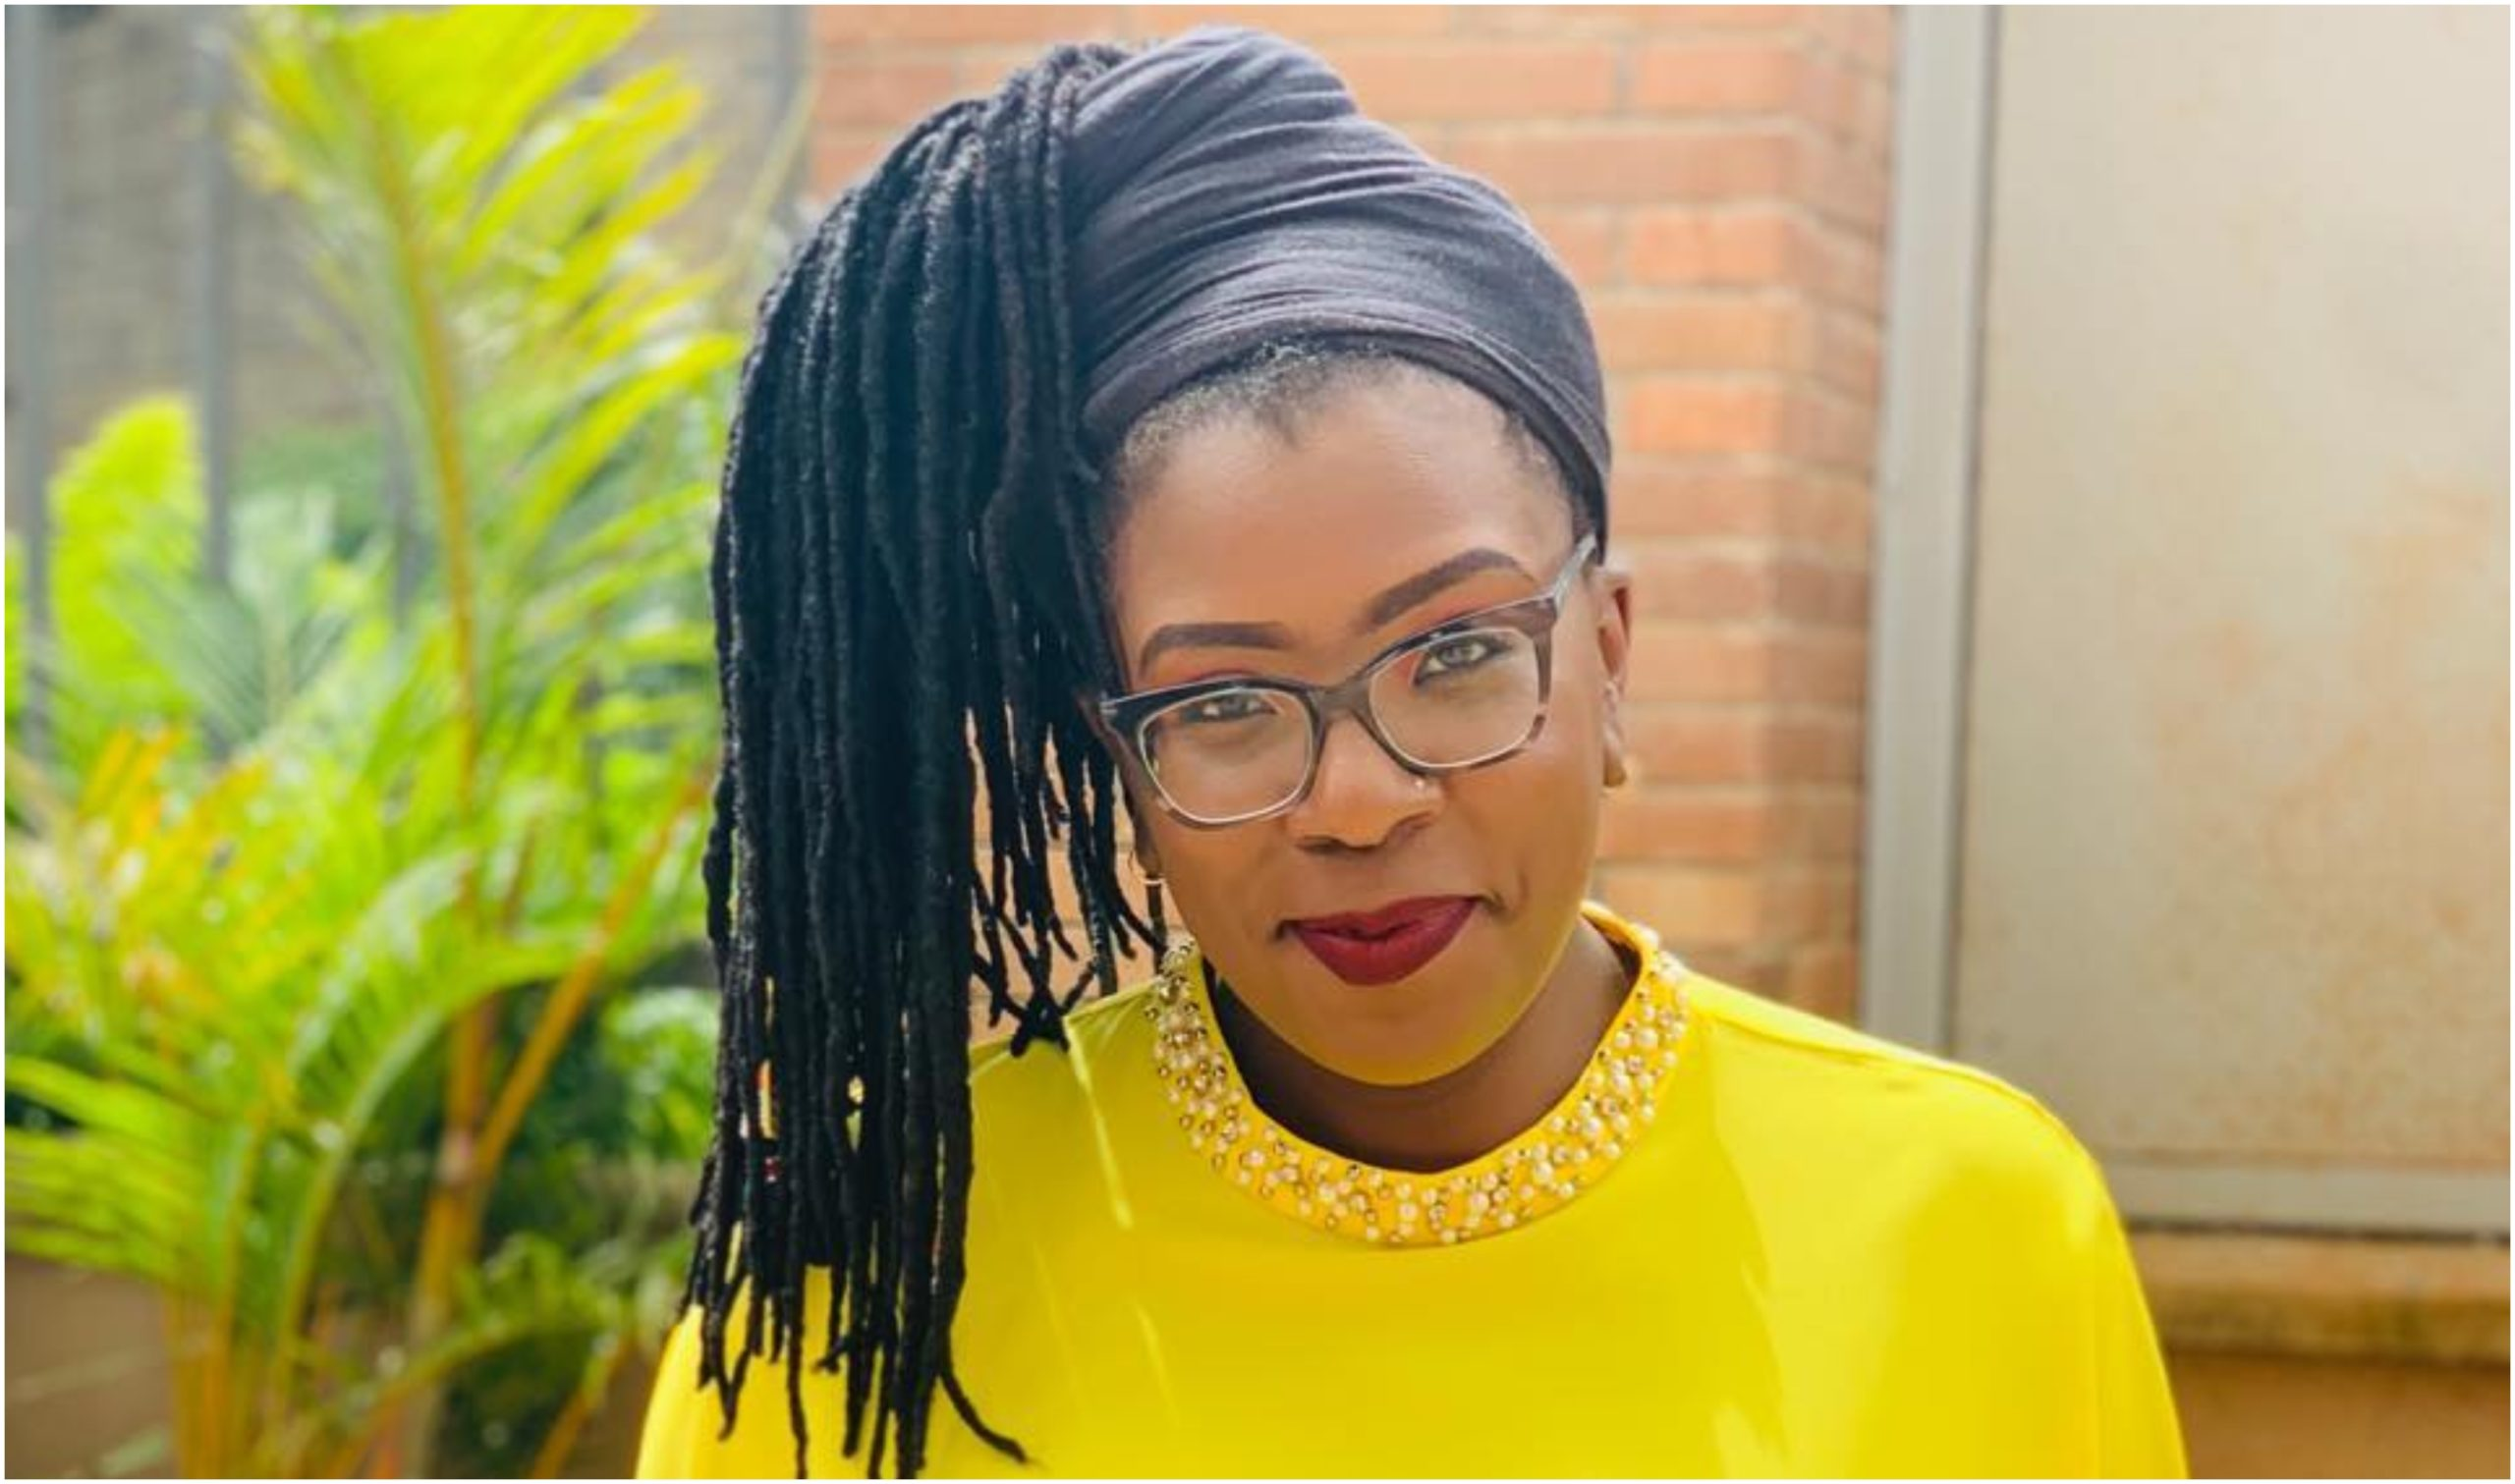 BBC's Ciru Muriuki turning heads in new hairdo days after ditching her long-kept dreadlocks (Photo)